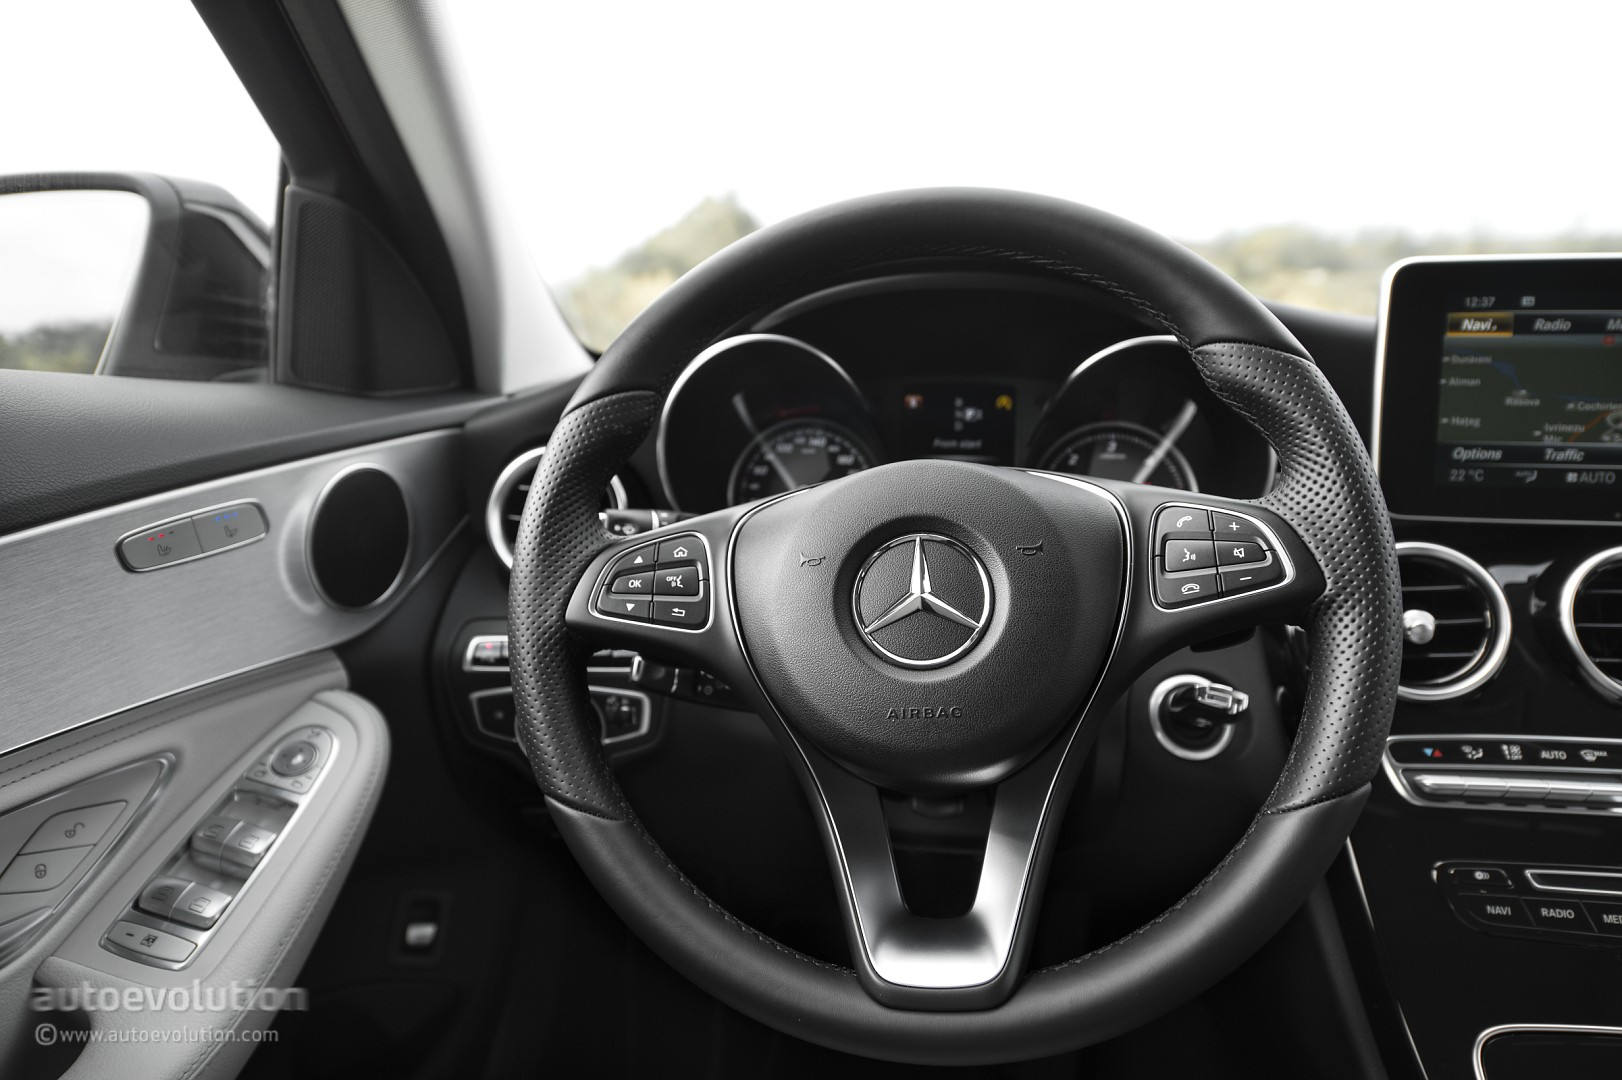 2015 mercedes-benz c-class hd wallpapers: they call it baby s-class